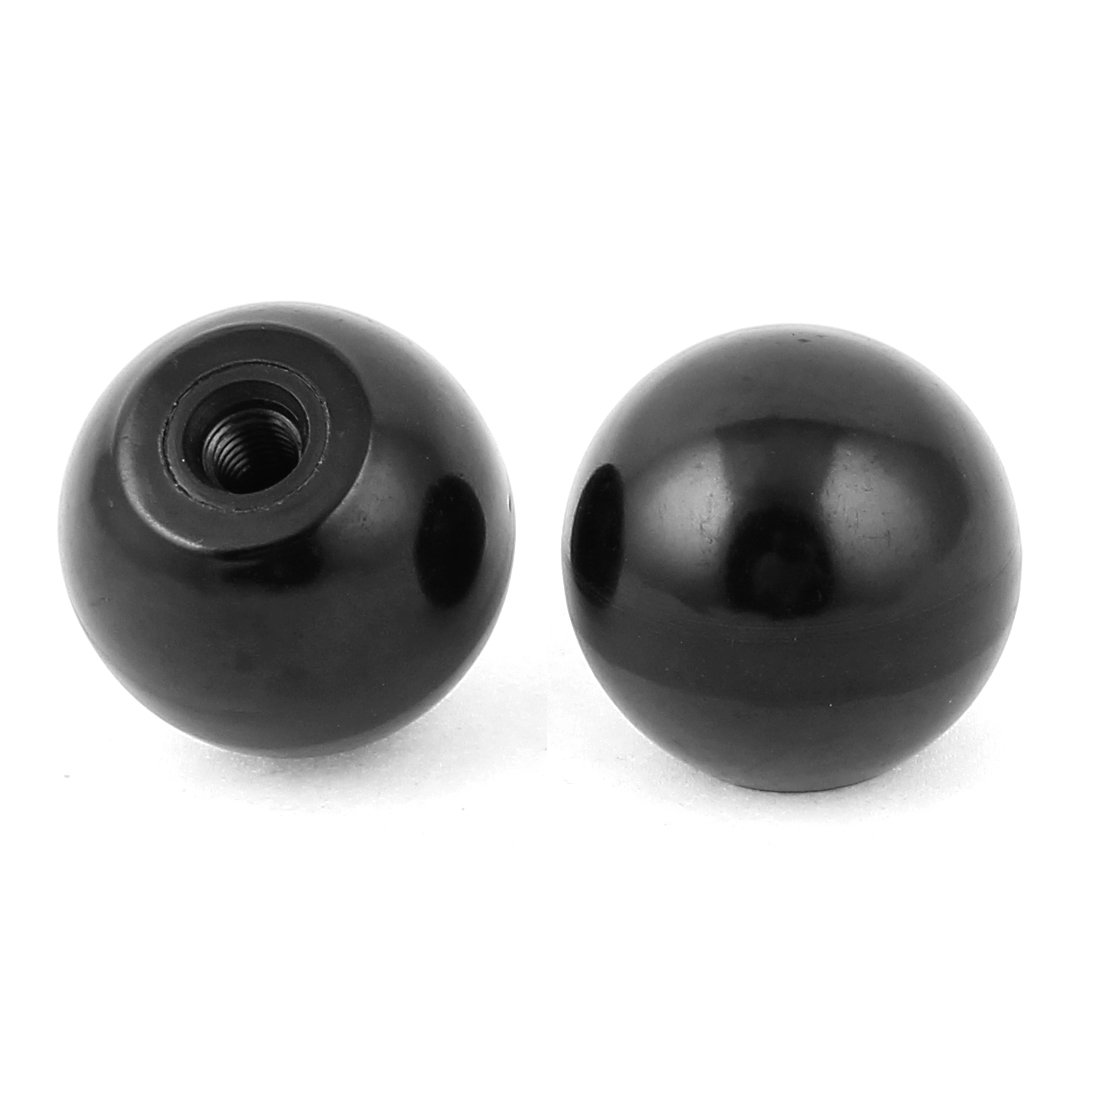 2 Pcs Round M8 Threaded Blind Hole 40mm Dia Ball Knob Handle Black